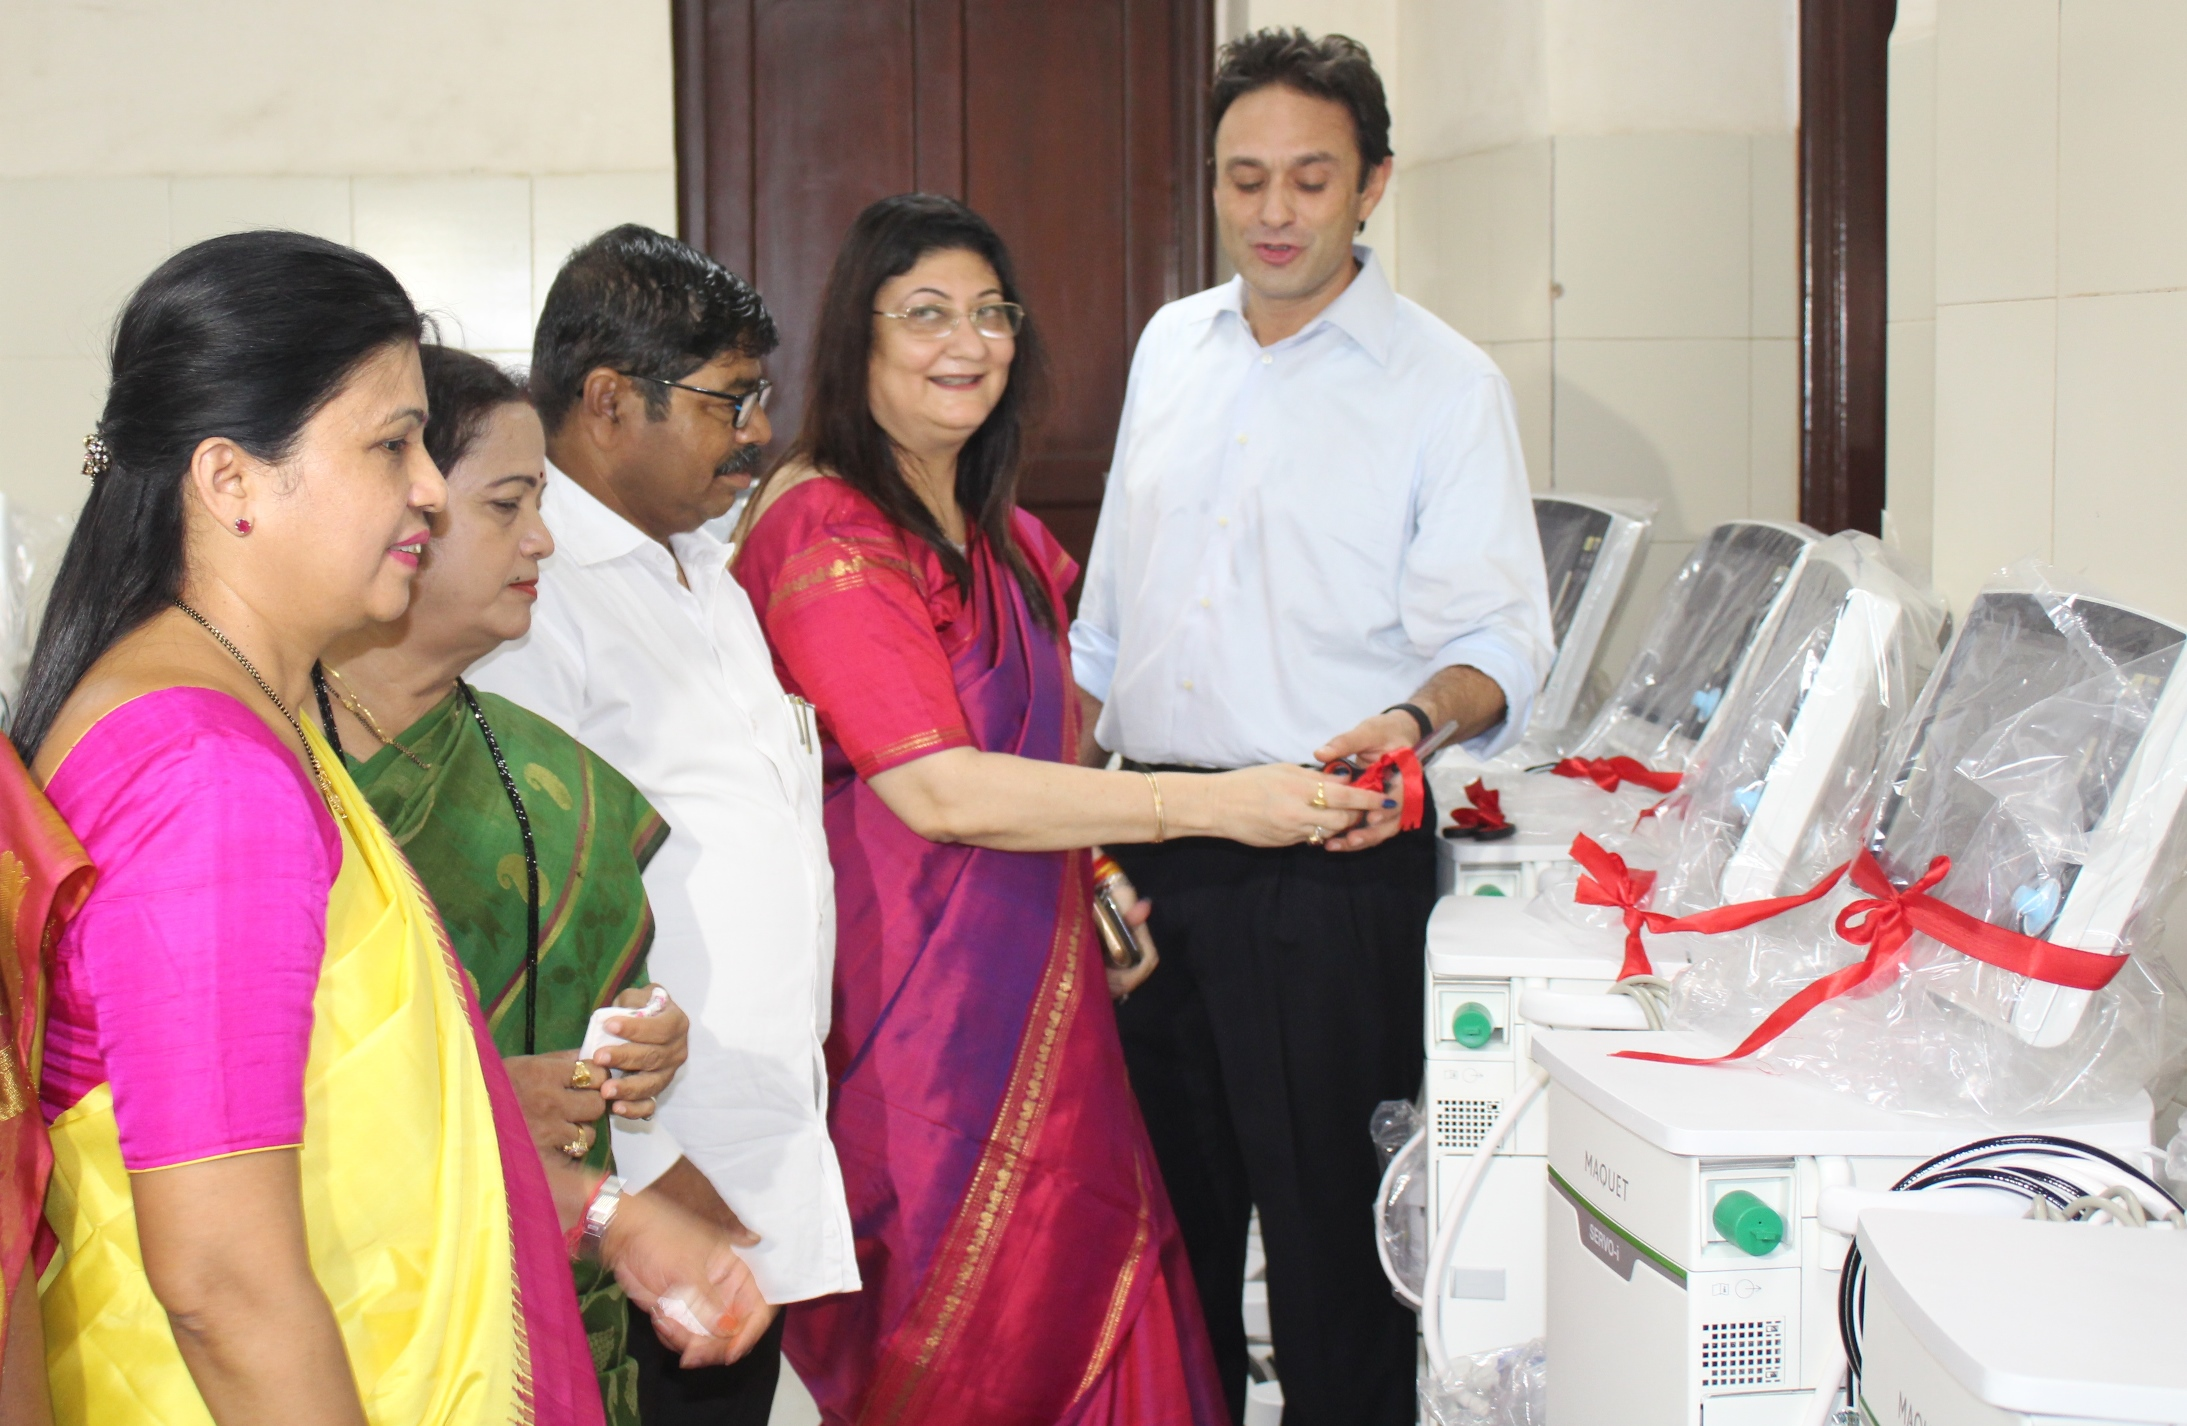 Wadia Hospital expands life support beds- adds 20 Ventilators at its facility